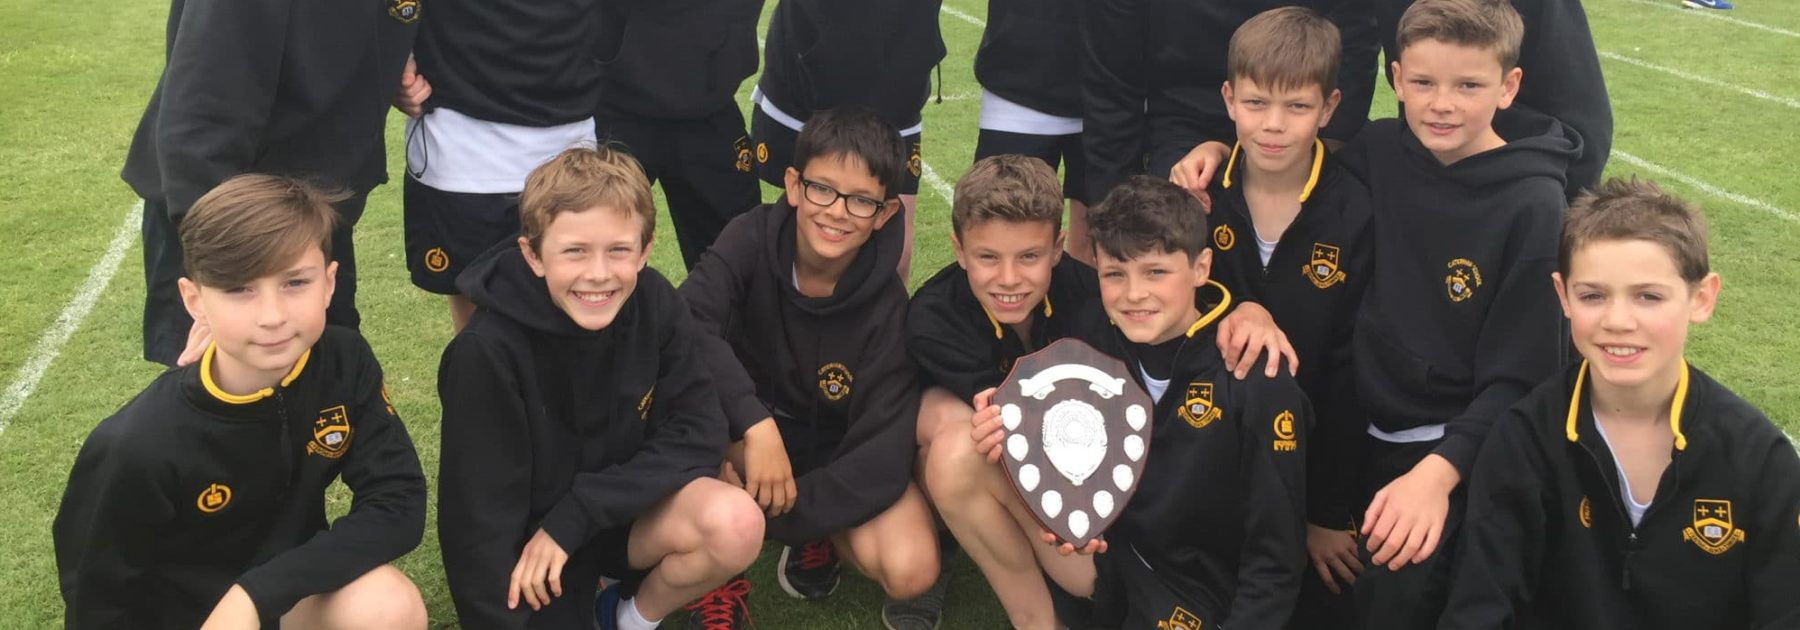 Caterham First Year Girls district Runners-Up; Boys crowned District Champions